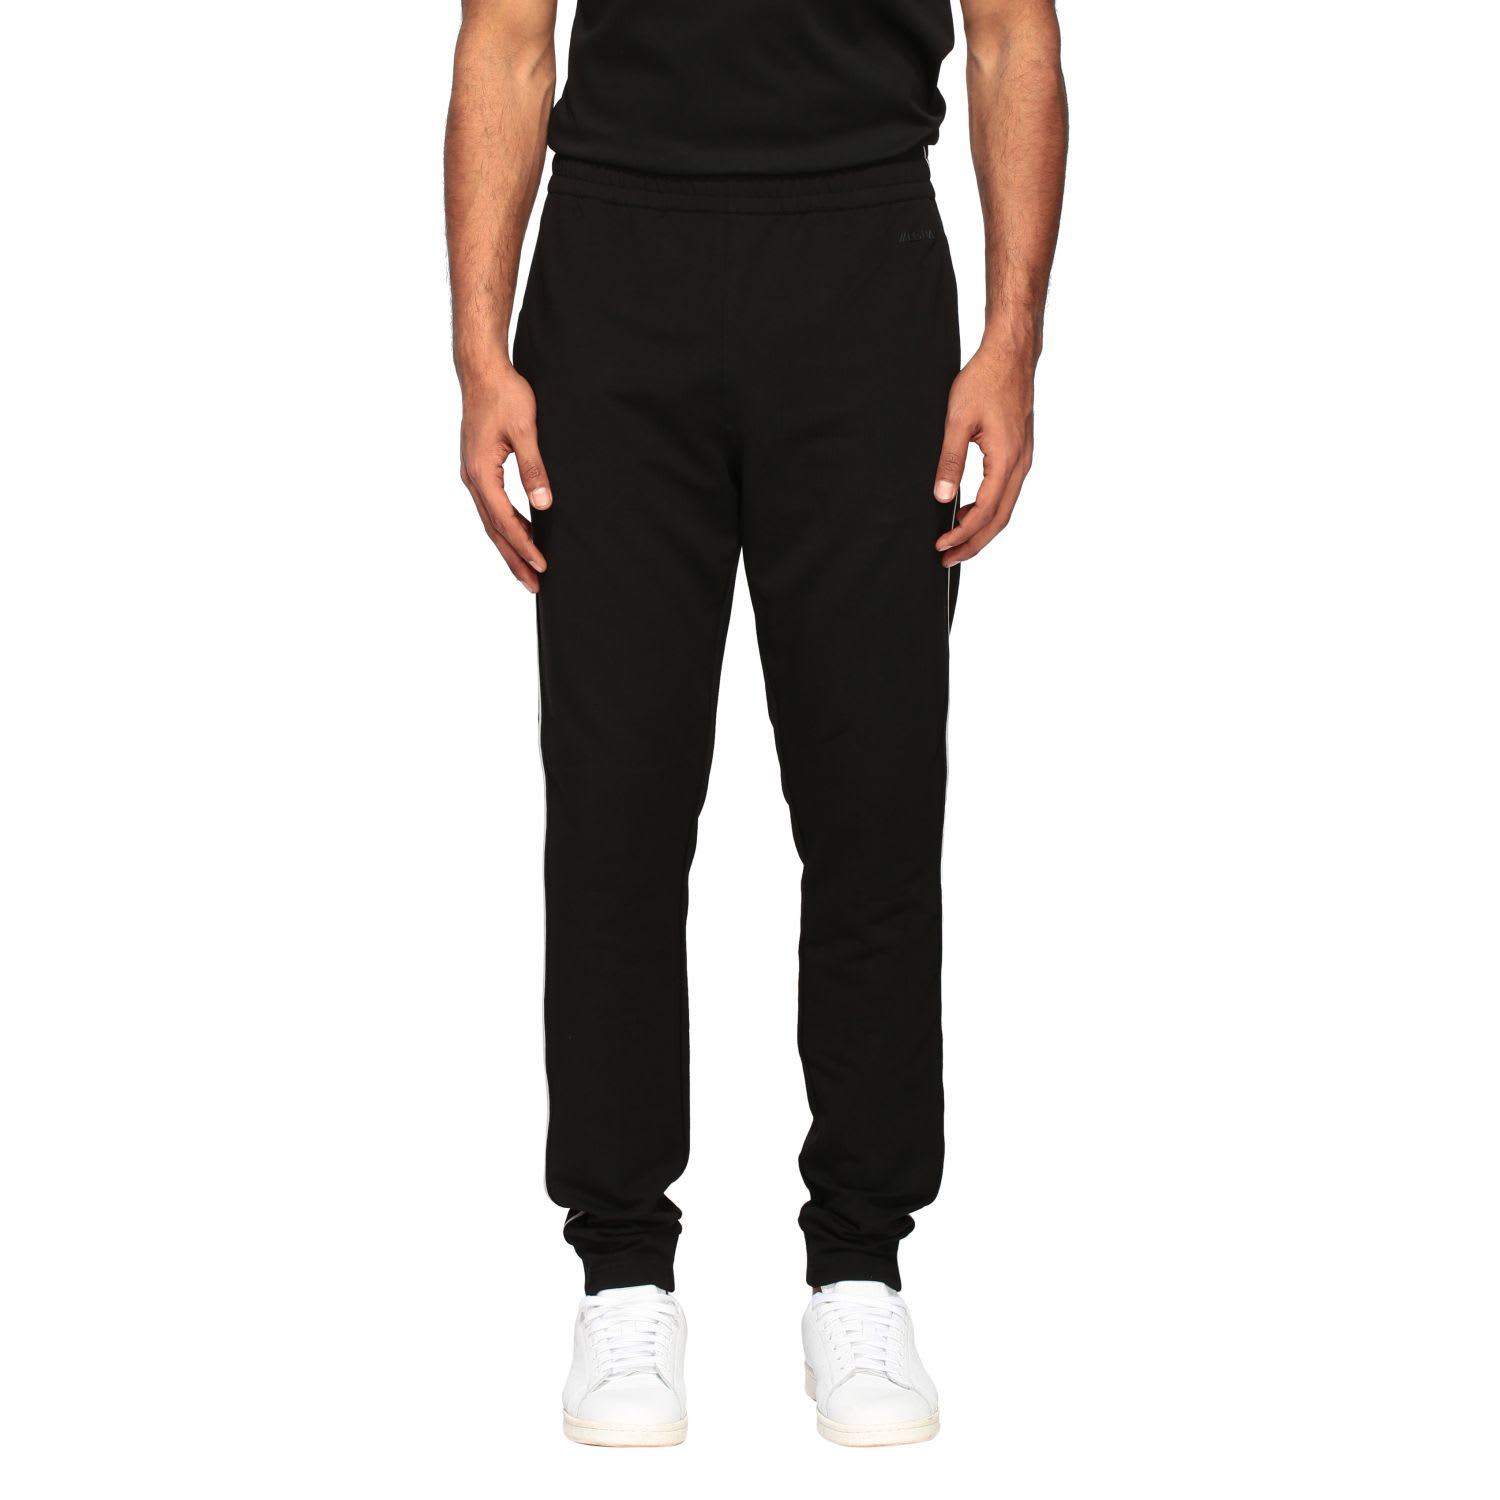 Z Zegna Pants JOGGING TROUSERS WITH CONTRASTING EDGES